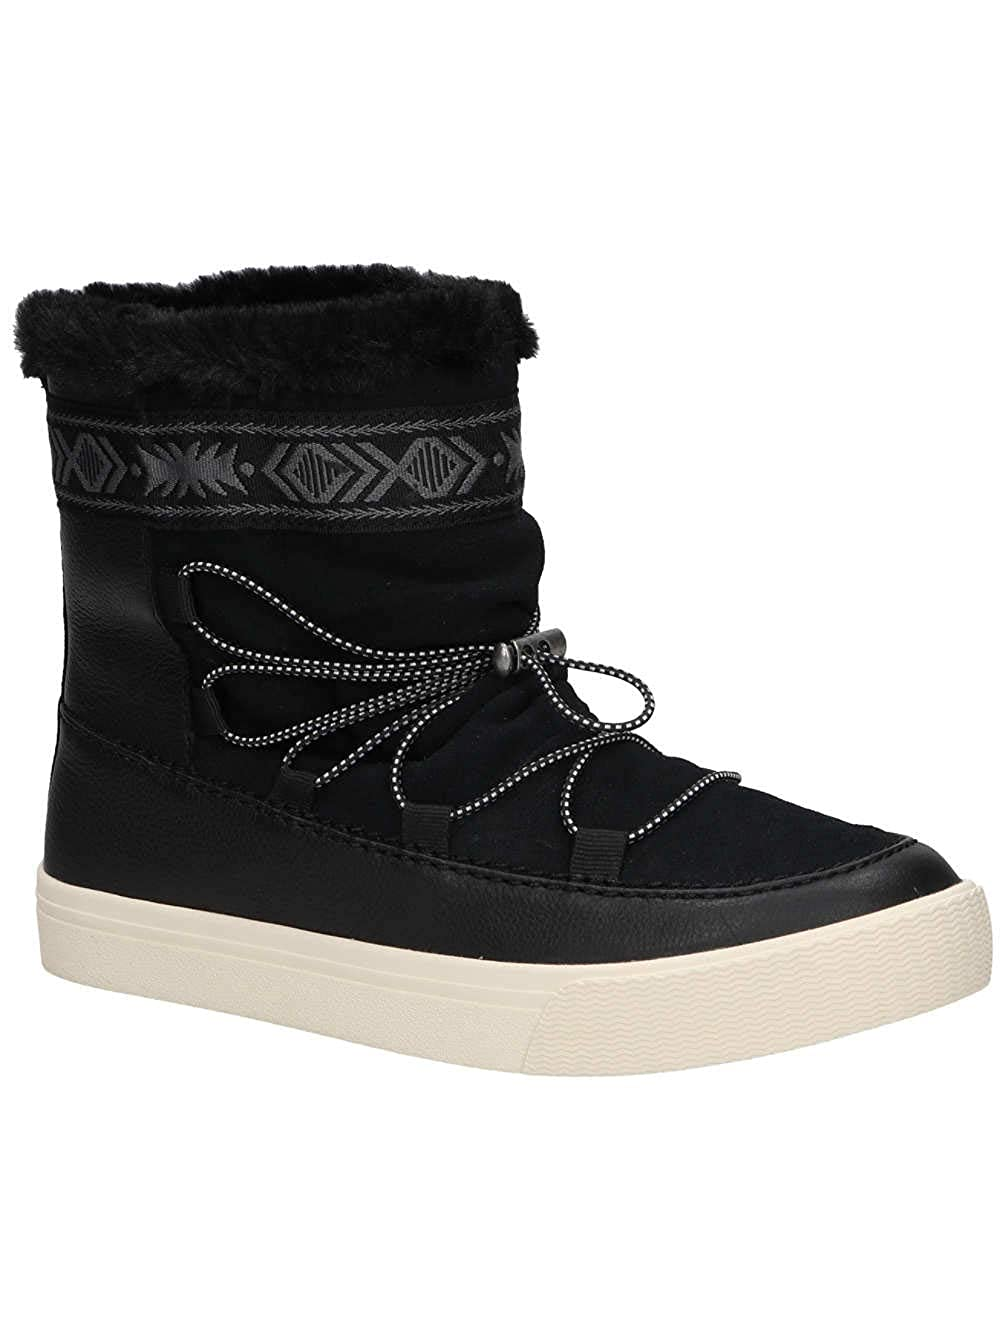 9632a20f650 TOMS Womens Alpine Water-Resistant Boot